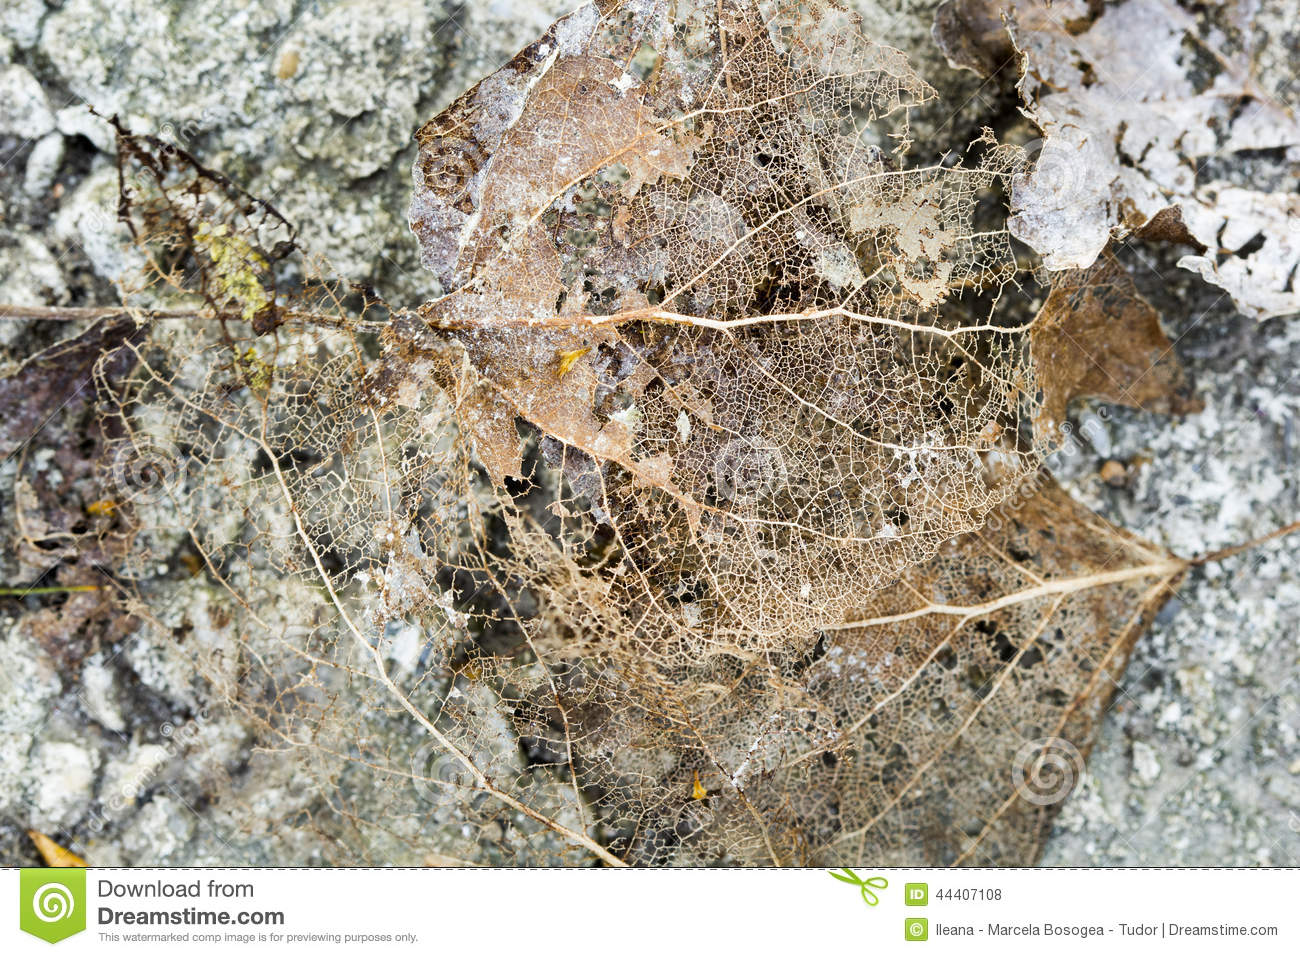 Texture with rotten leaves with fibers on a concrete surface